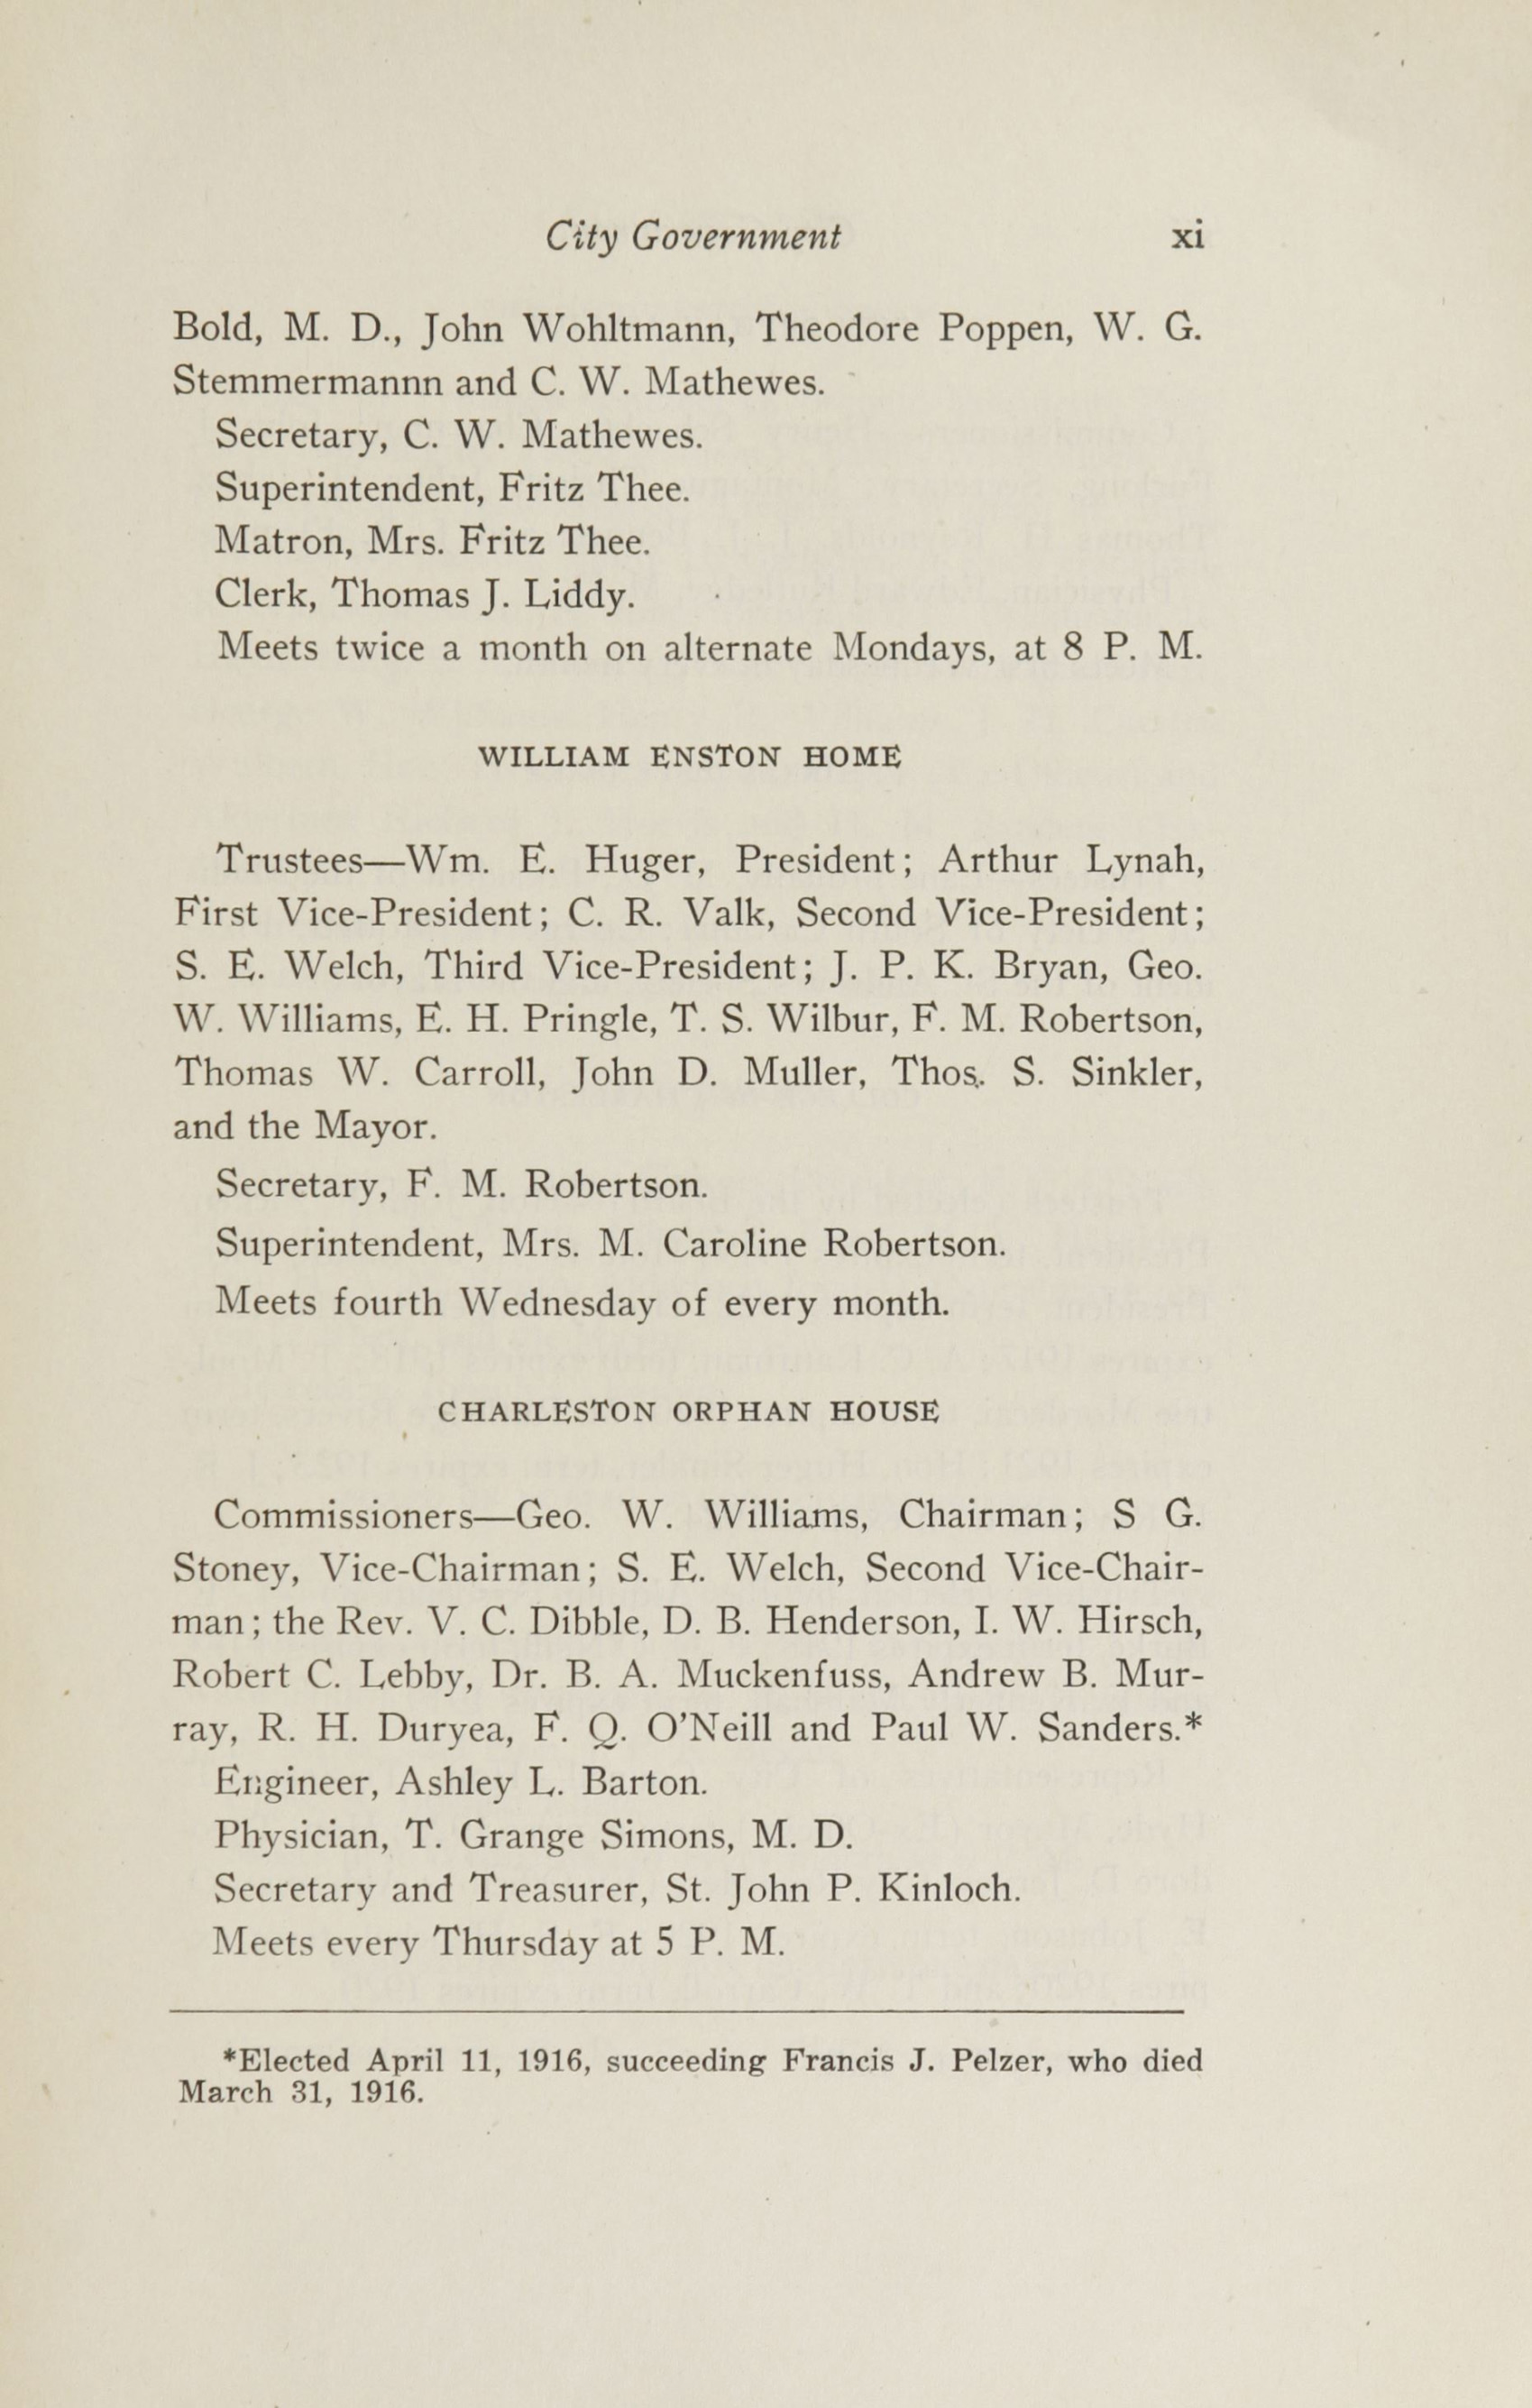 Charleston Yearbook, 1916, page xi